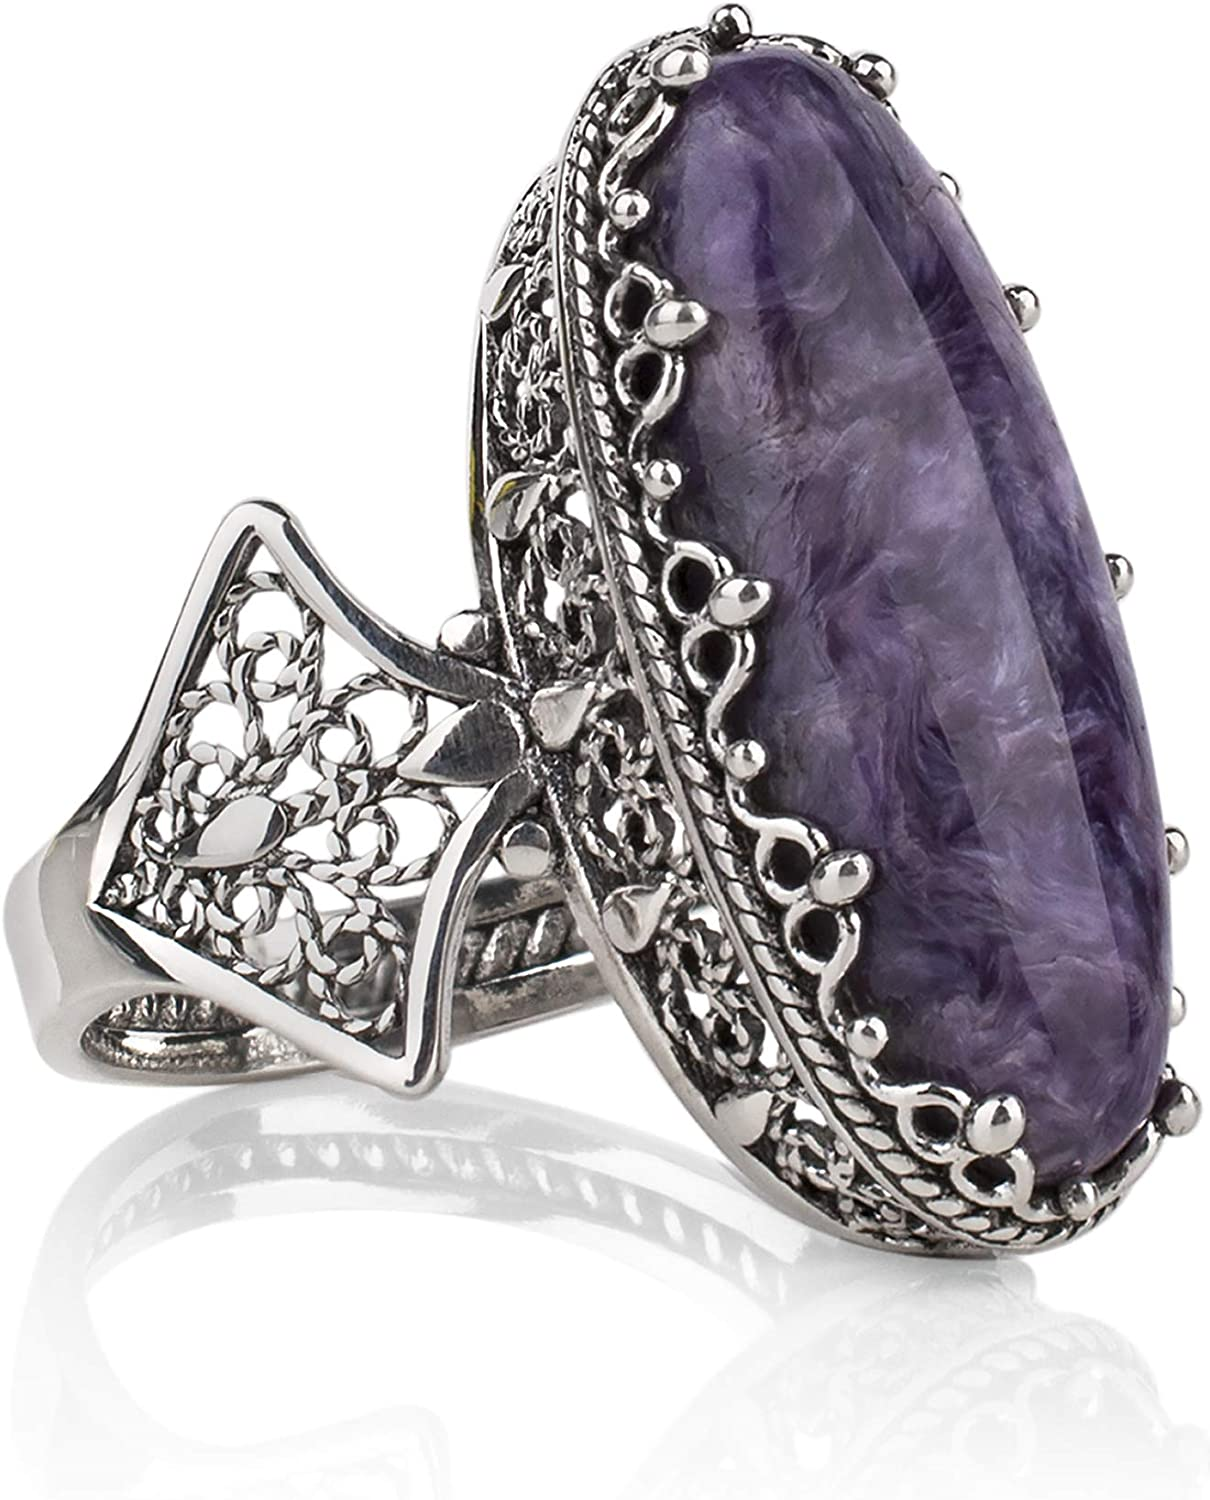 Ottoman Silver Collection 925 Dai All stores are sold Style Max 70% OFF Filigree Sterling